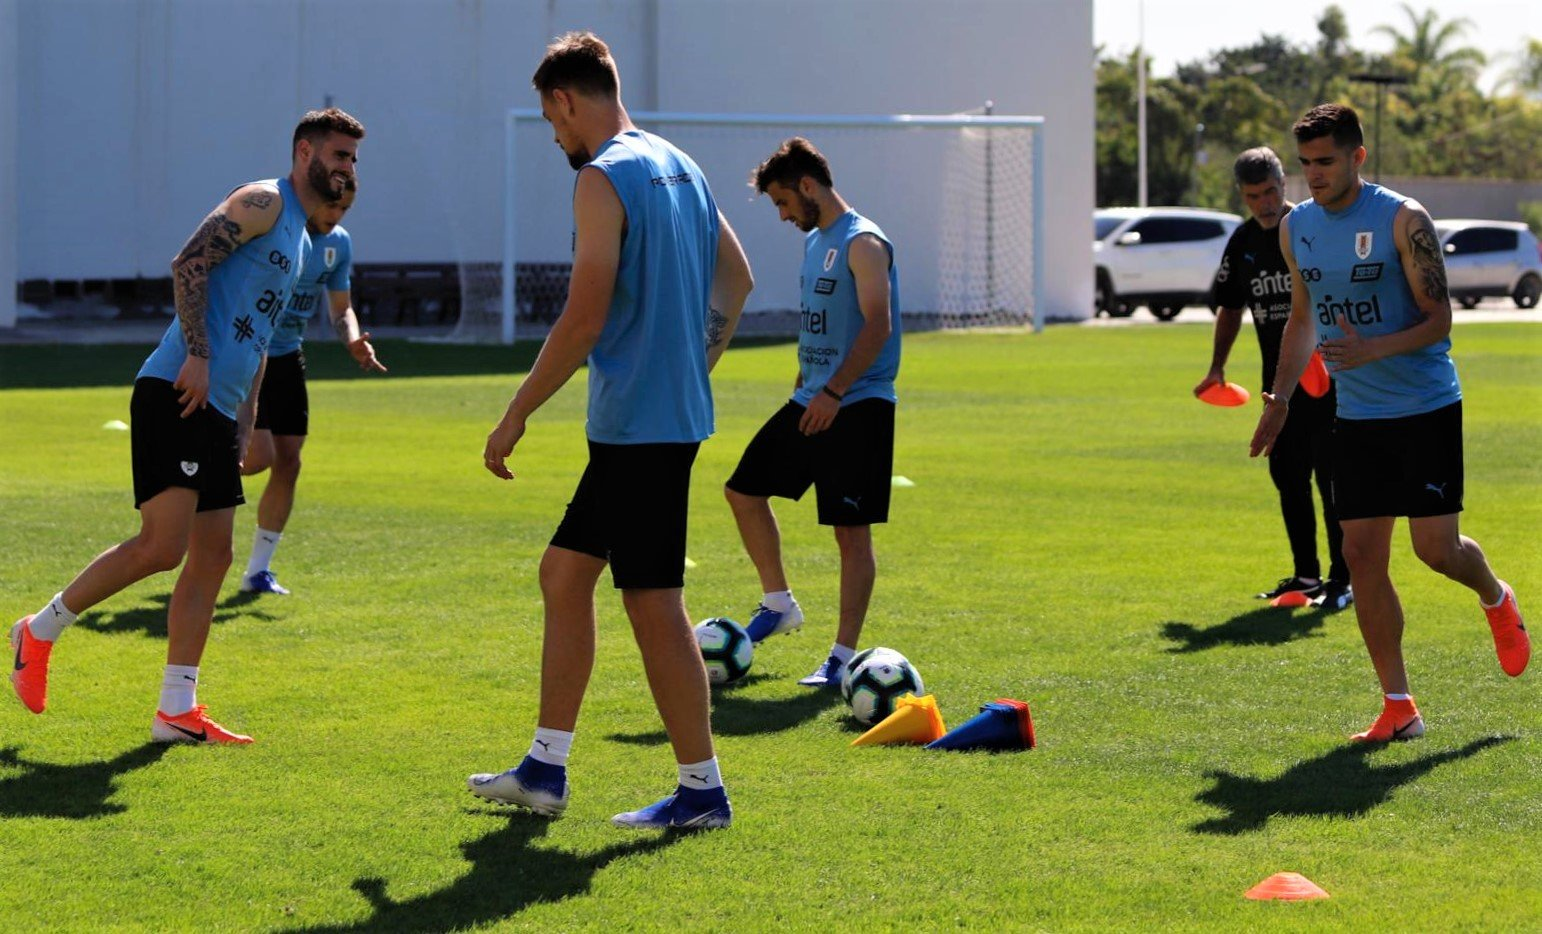 The Uruguayan Soccer team is already training for the momentous match with Peru on Saturday.